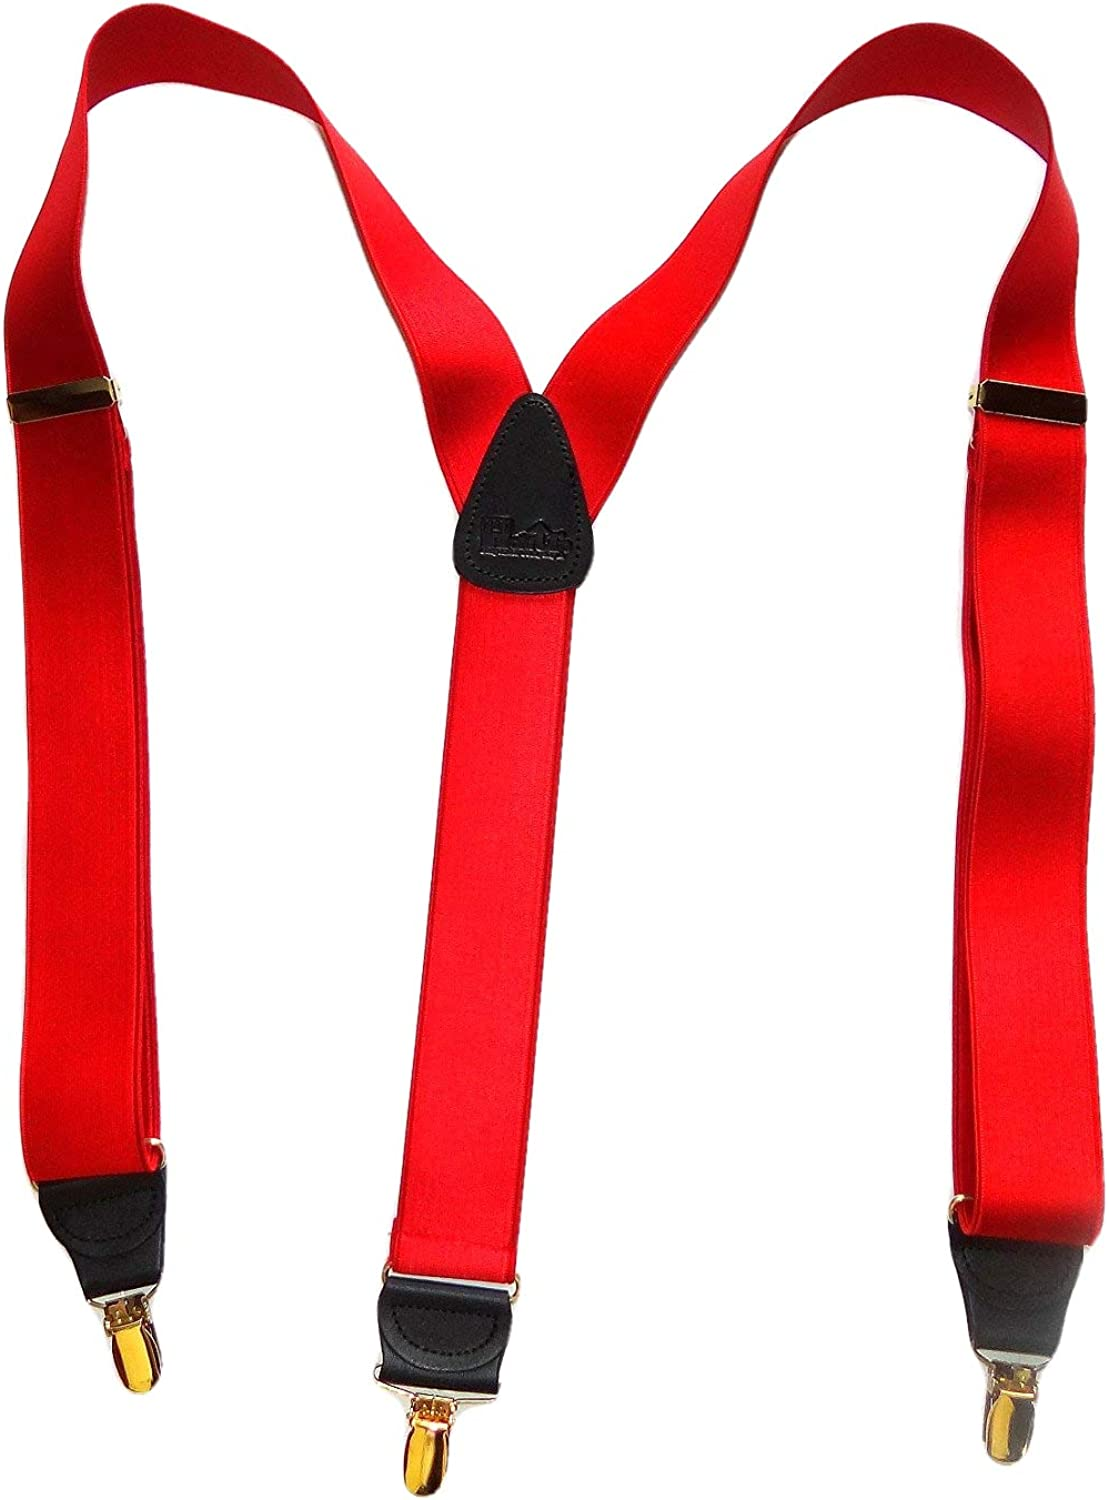 Holdup brand Regal Red Satin Finish Y-back Suspenders with Patented Gold-tone No-slip Clips